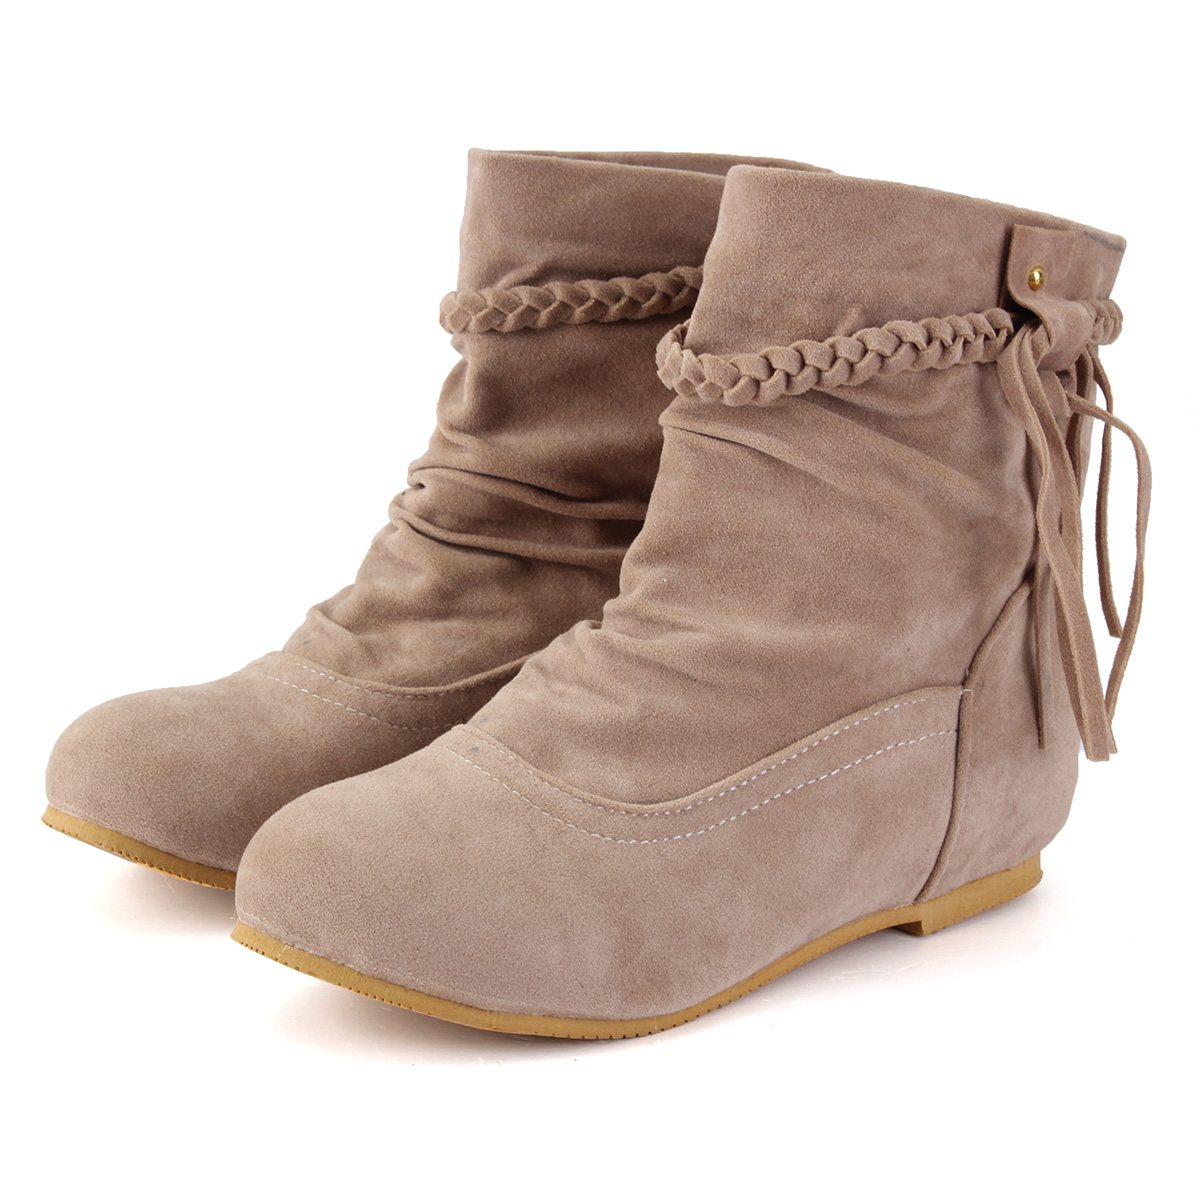 2017 new fashion tassels ankle boots fringes